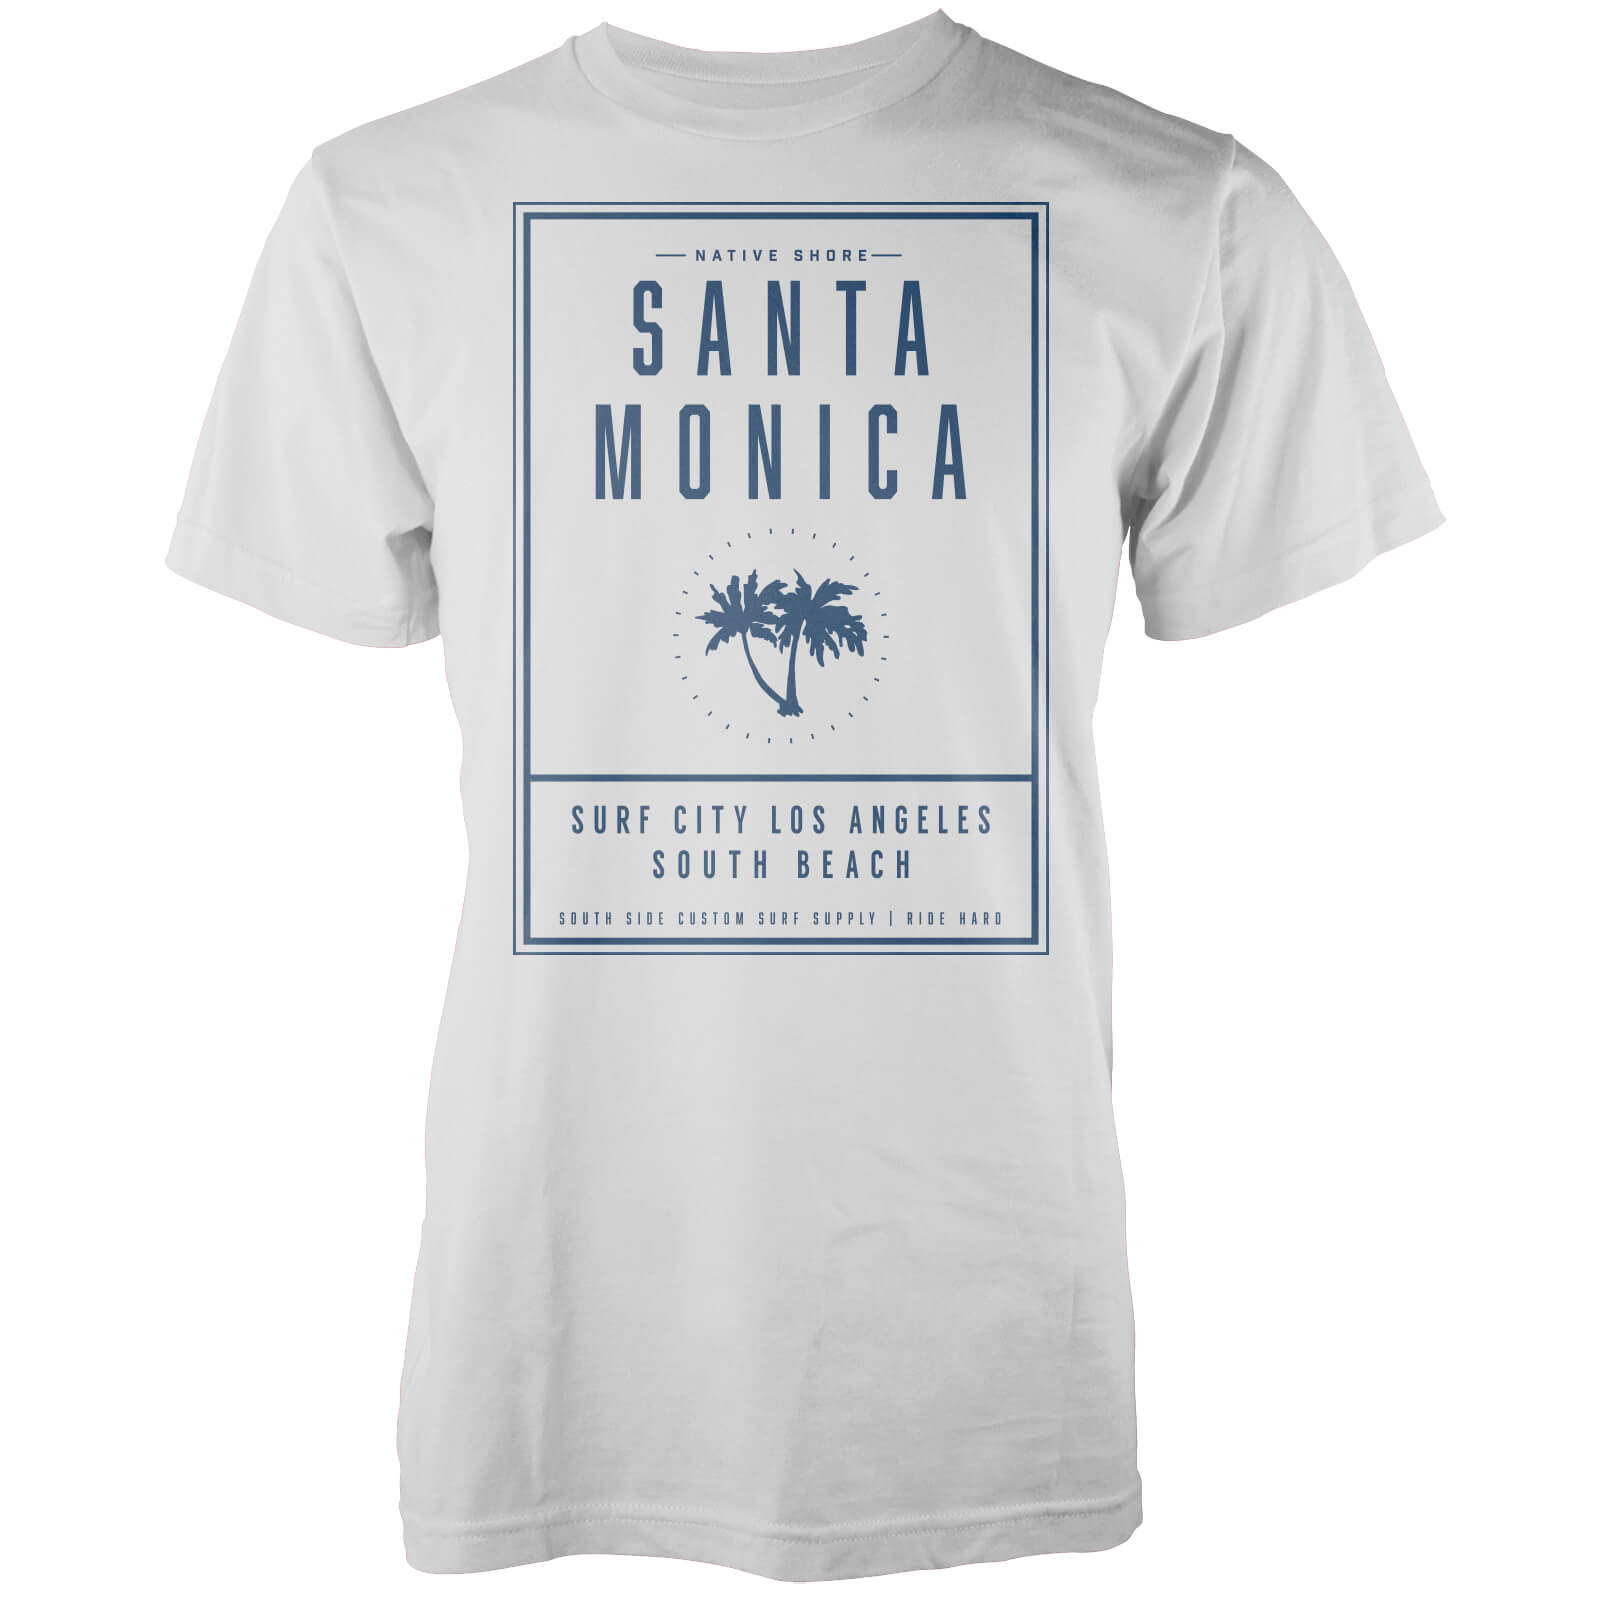 T-Shirt Homme Santa Monica LA Native Shore - Blanc